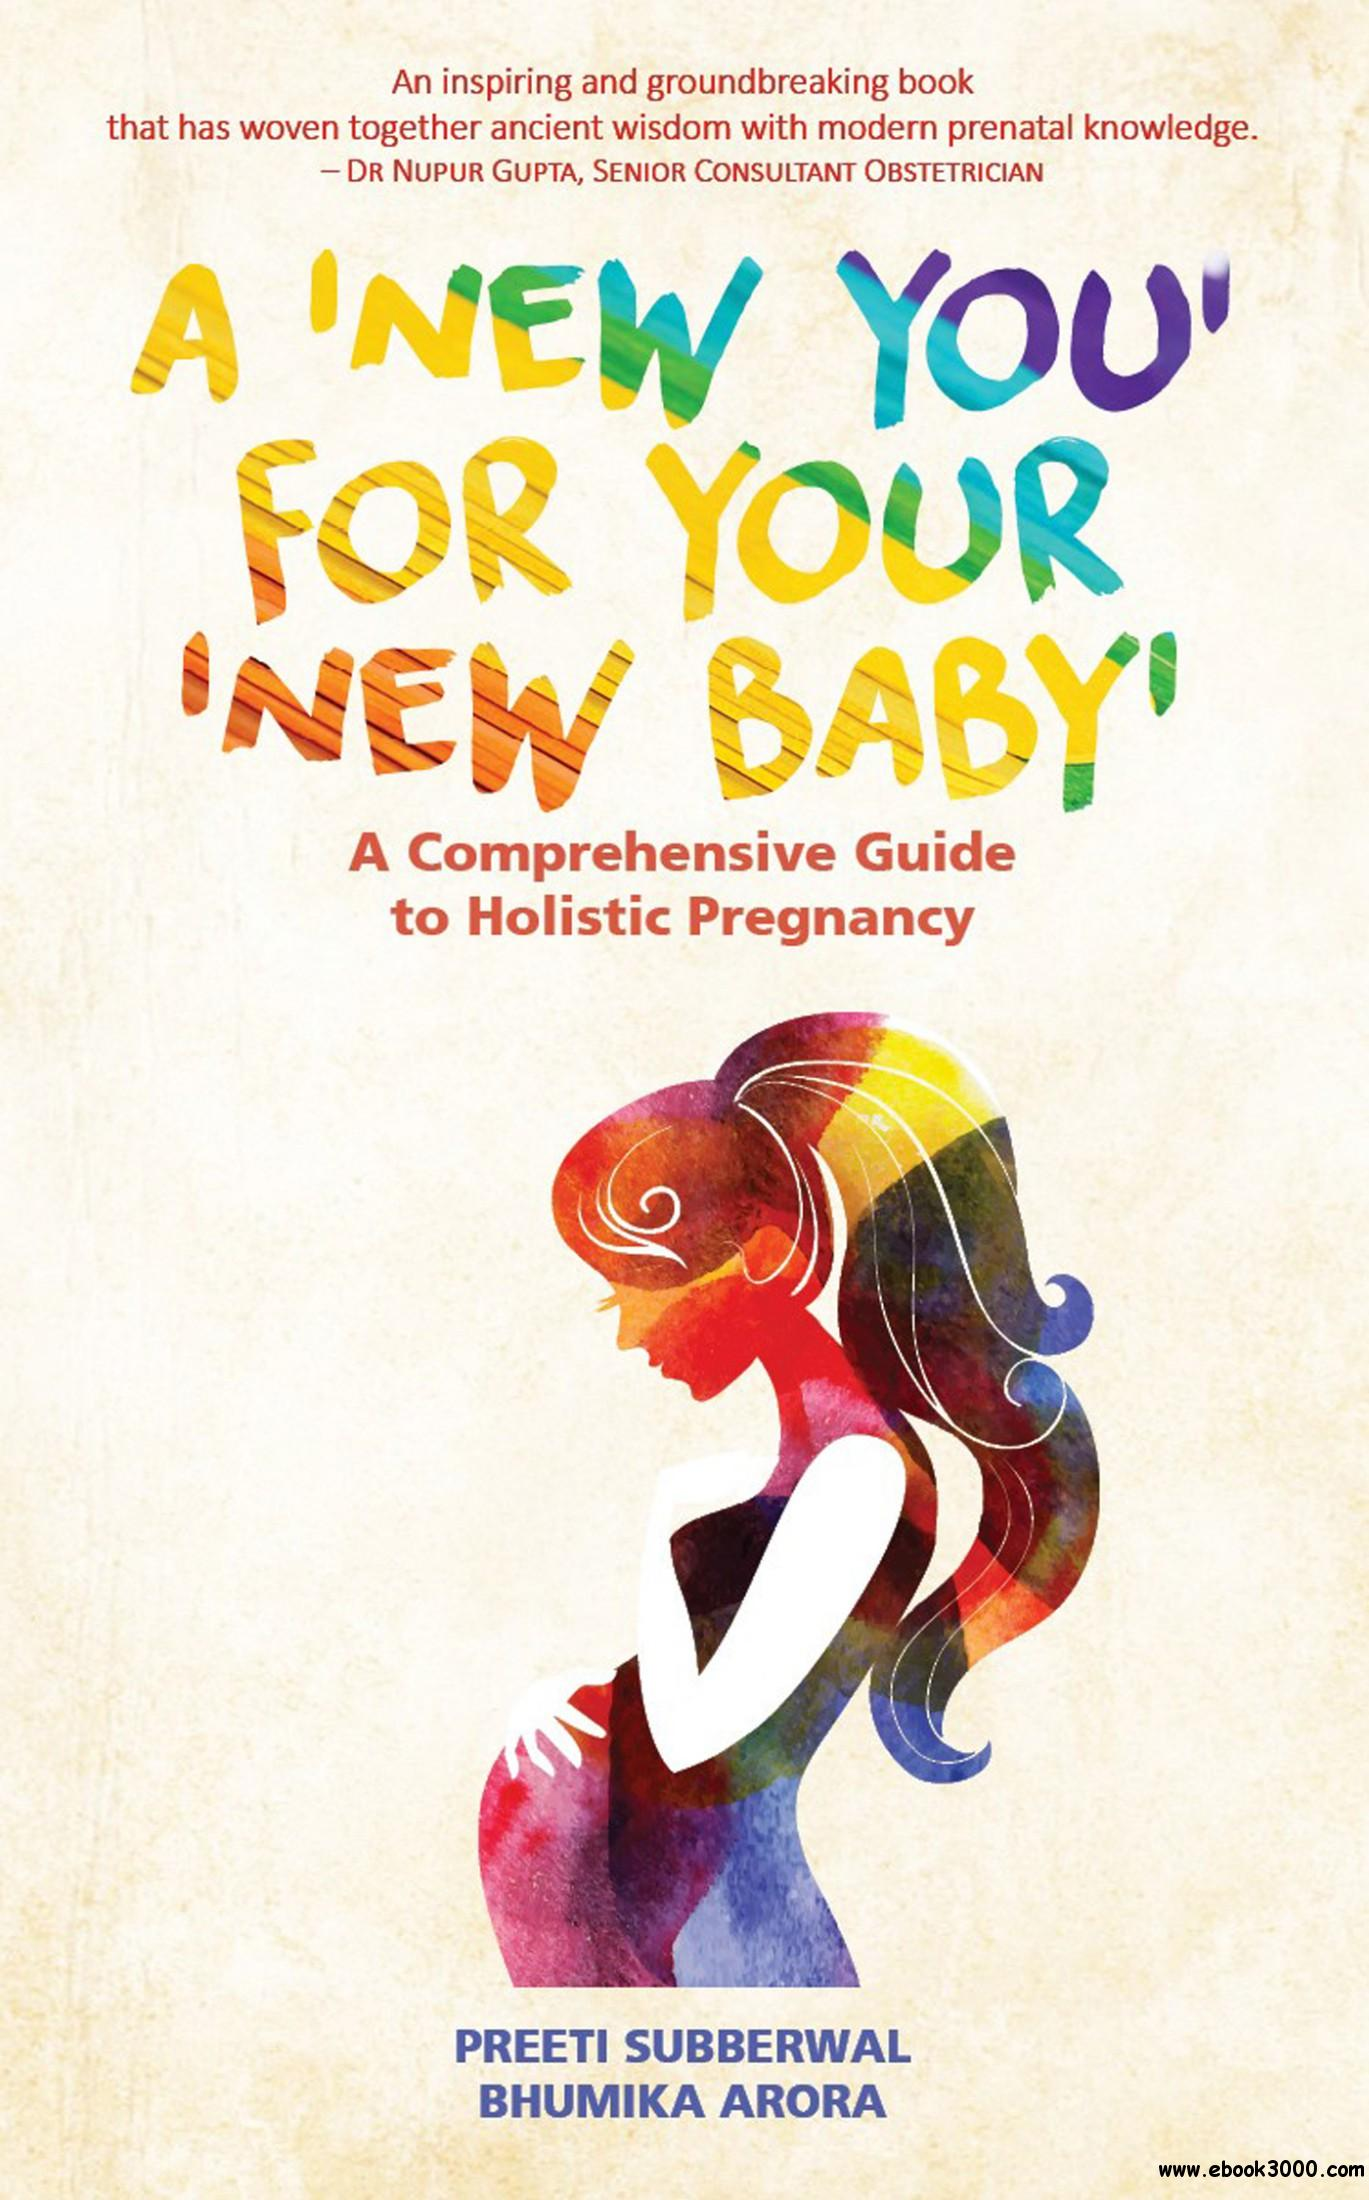 A 'New You' for Your 'New Baby': A Comprehensive Guide to Holistic Pregnancy